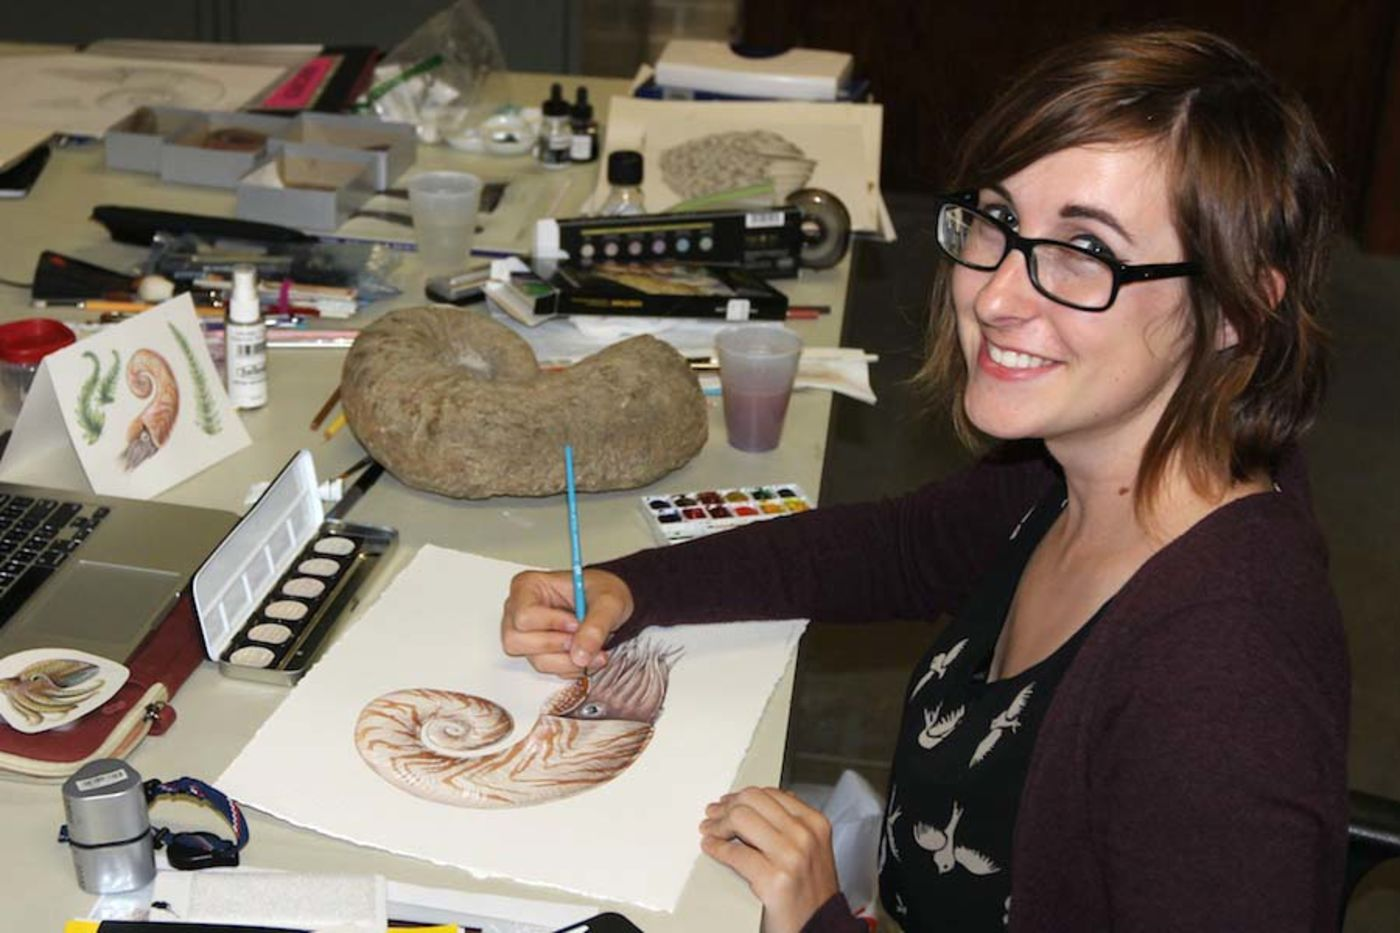 A woman sitting at a desk with art supplies, holding a pencil in hand and drawing a nautilus